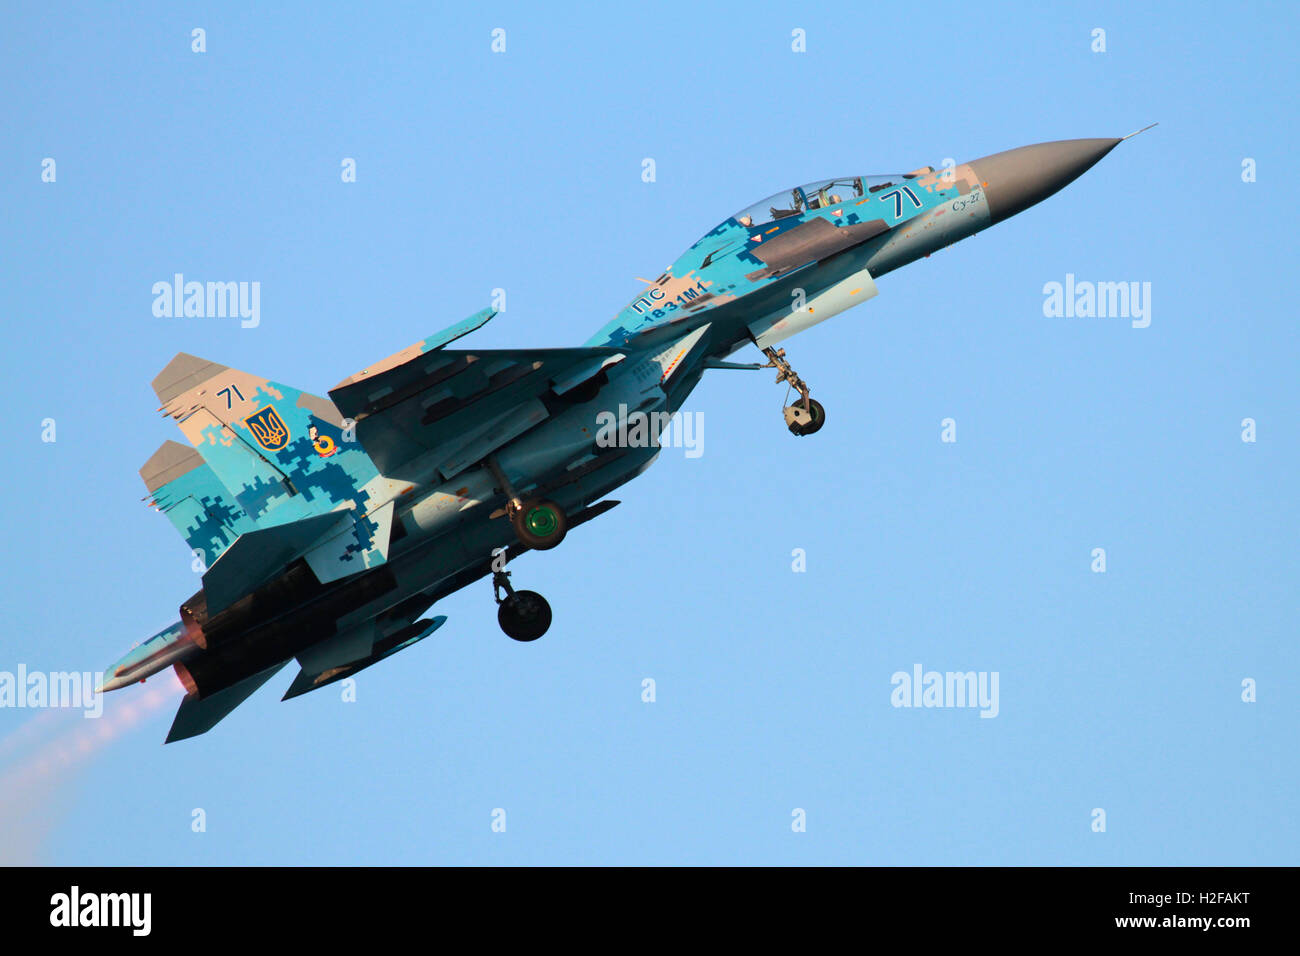 Ukraine Air Force Sukhoi Su-27UB Flanker jet fighter aircraft flying at an air display - Stock Image